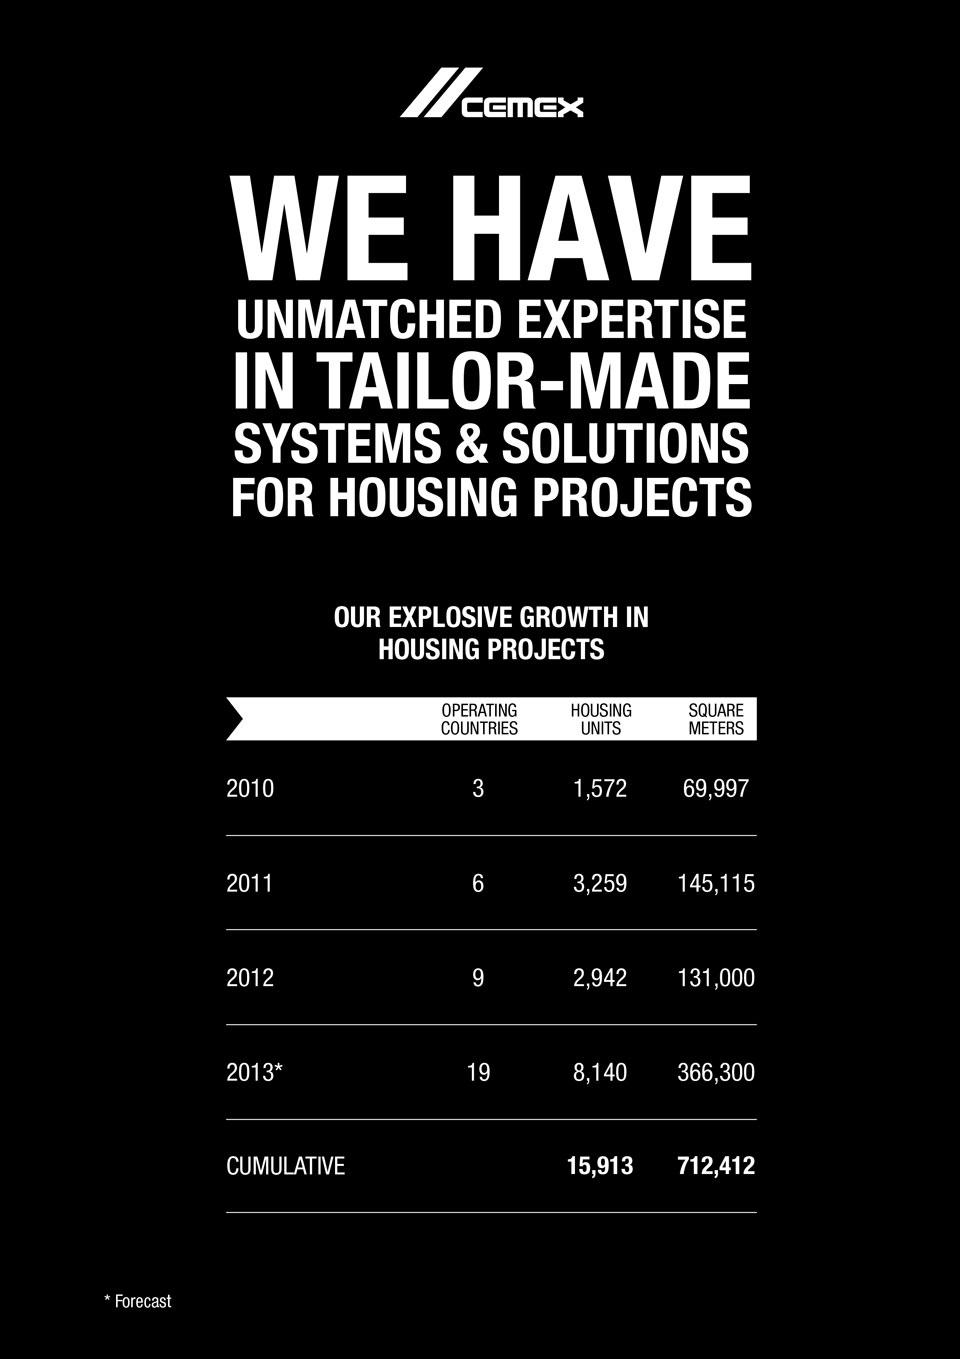 An image showing some statistics regarding the personalized projects throughout the years.